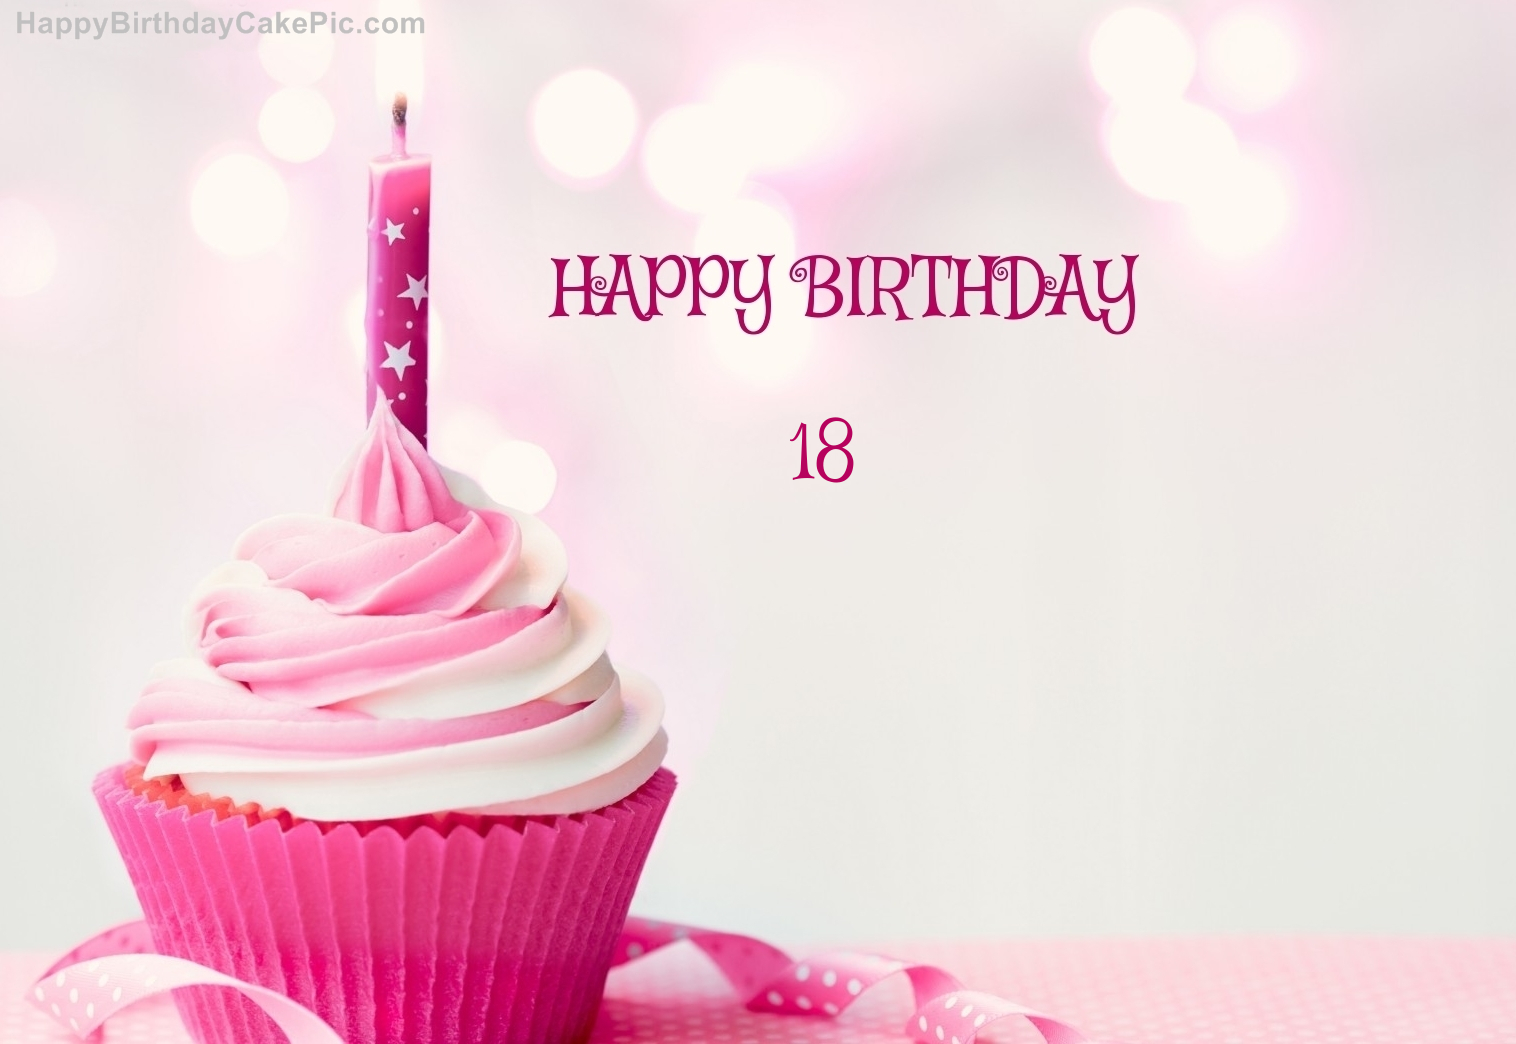 Happy Birthday Cupcake Candle Pink Cake For - Happy birthday 18 cake